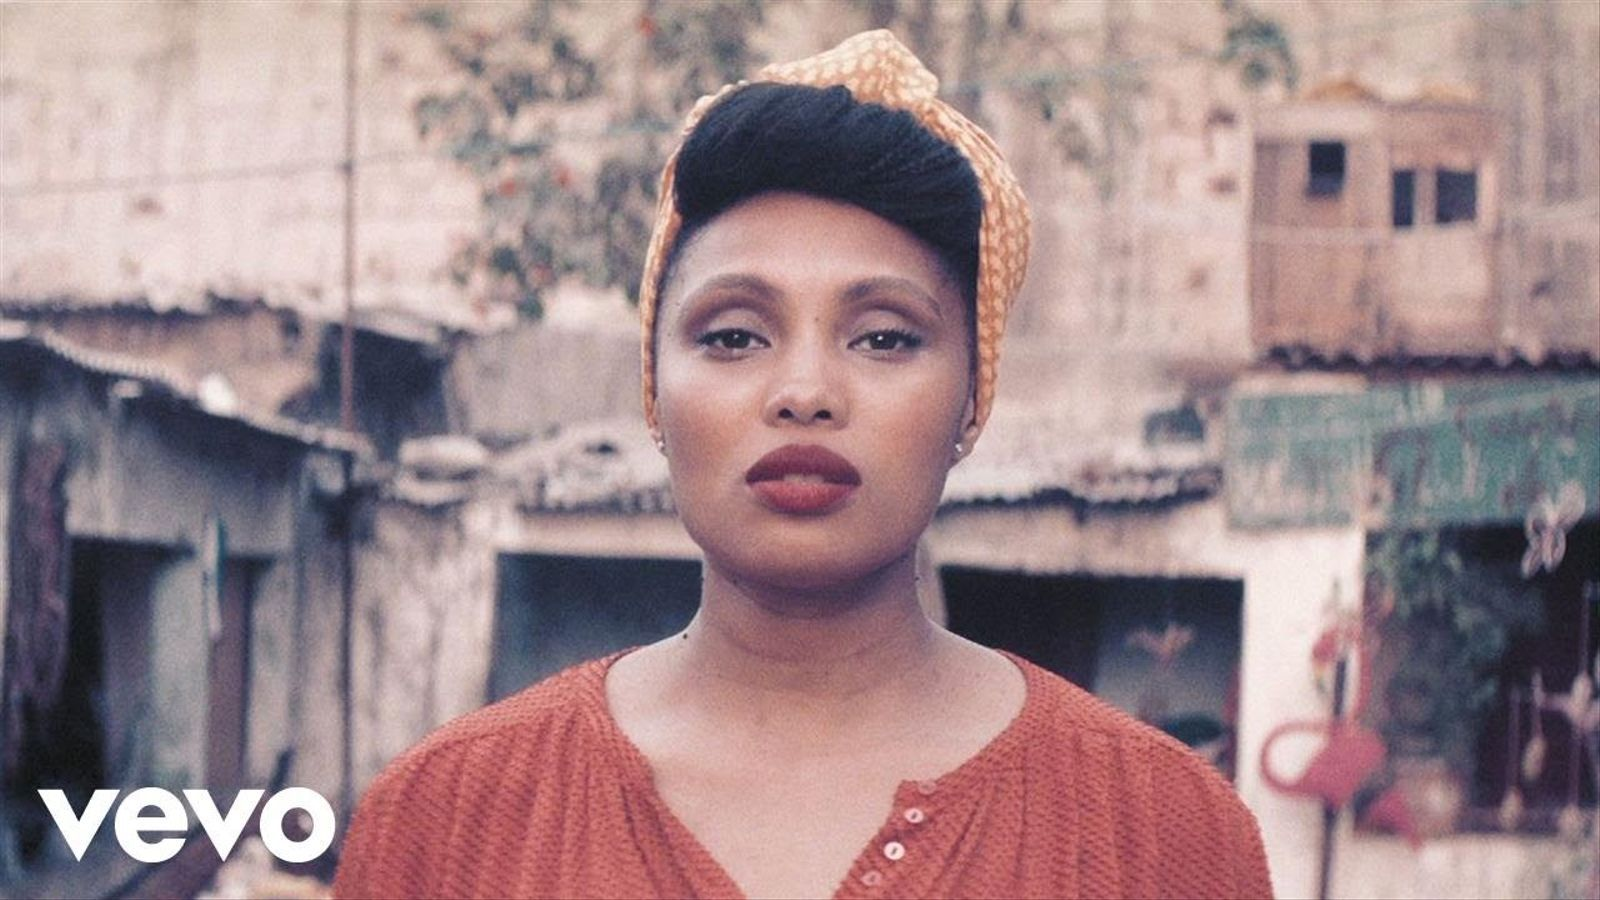 Imany, 'Silver lining (Clap your hands)'